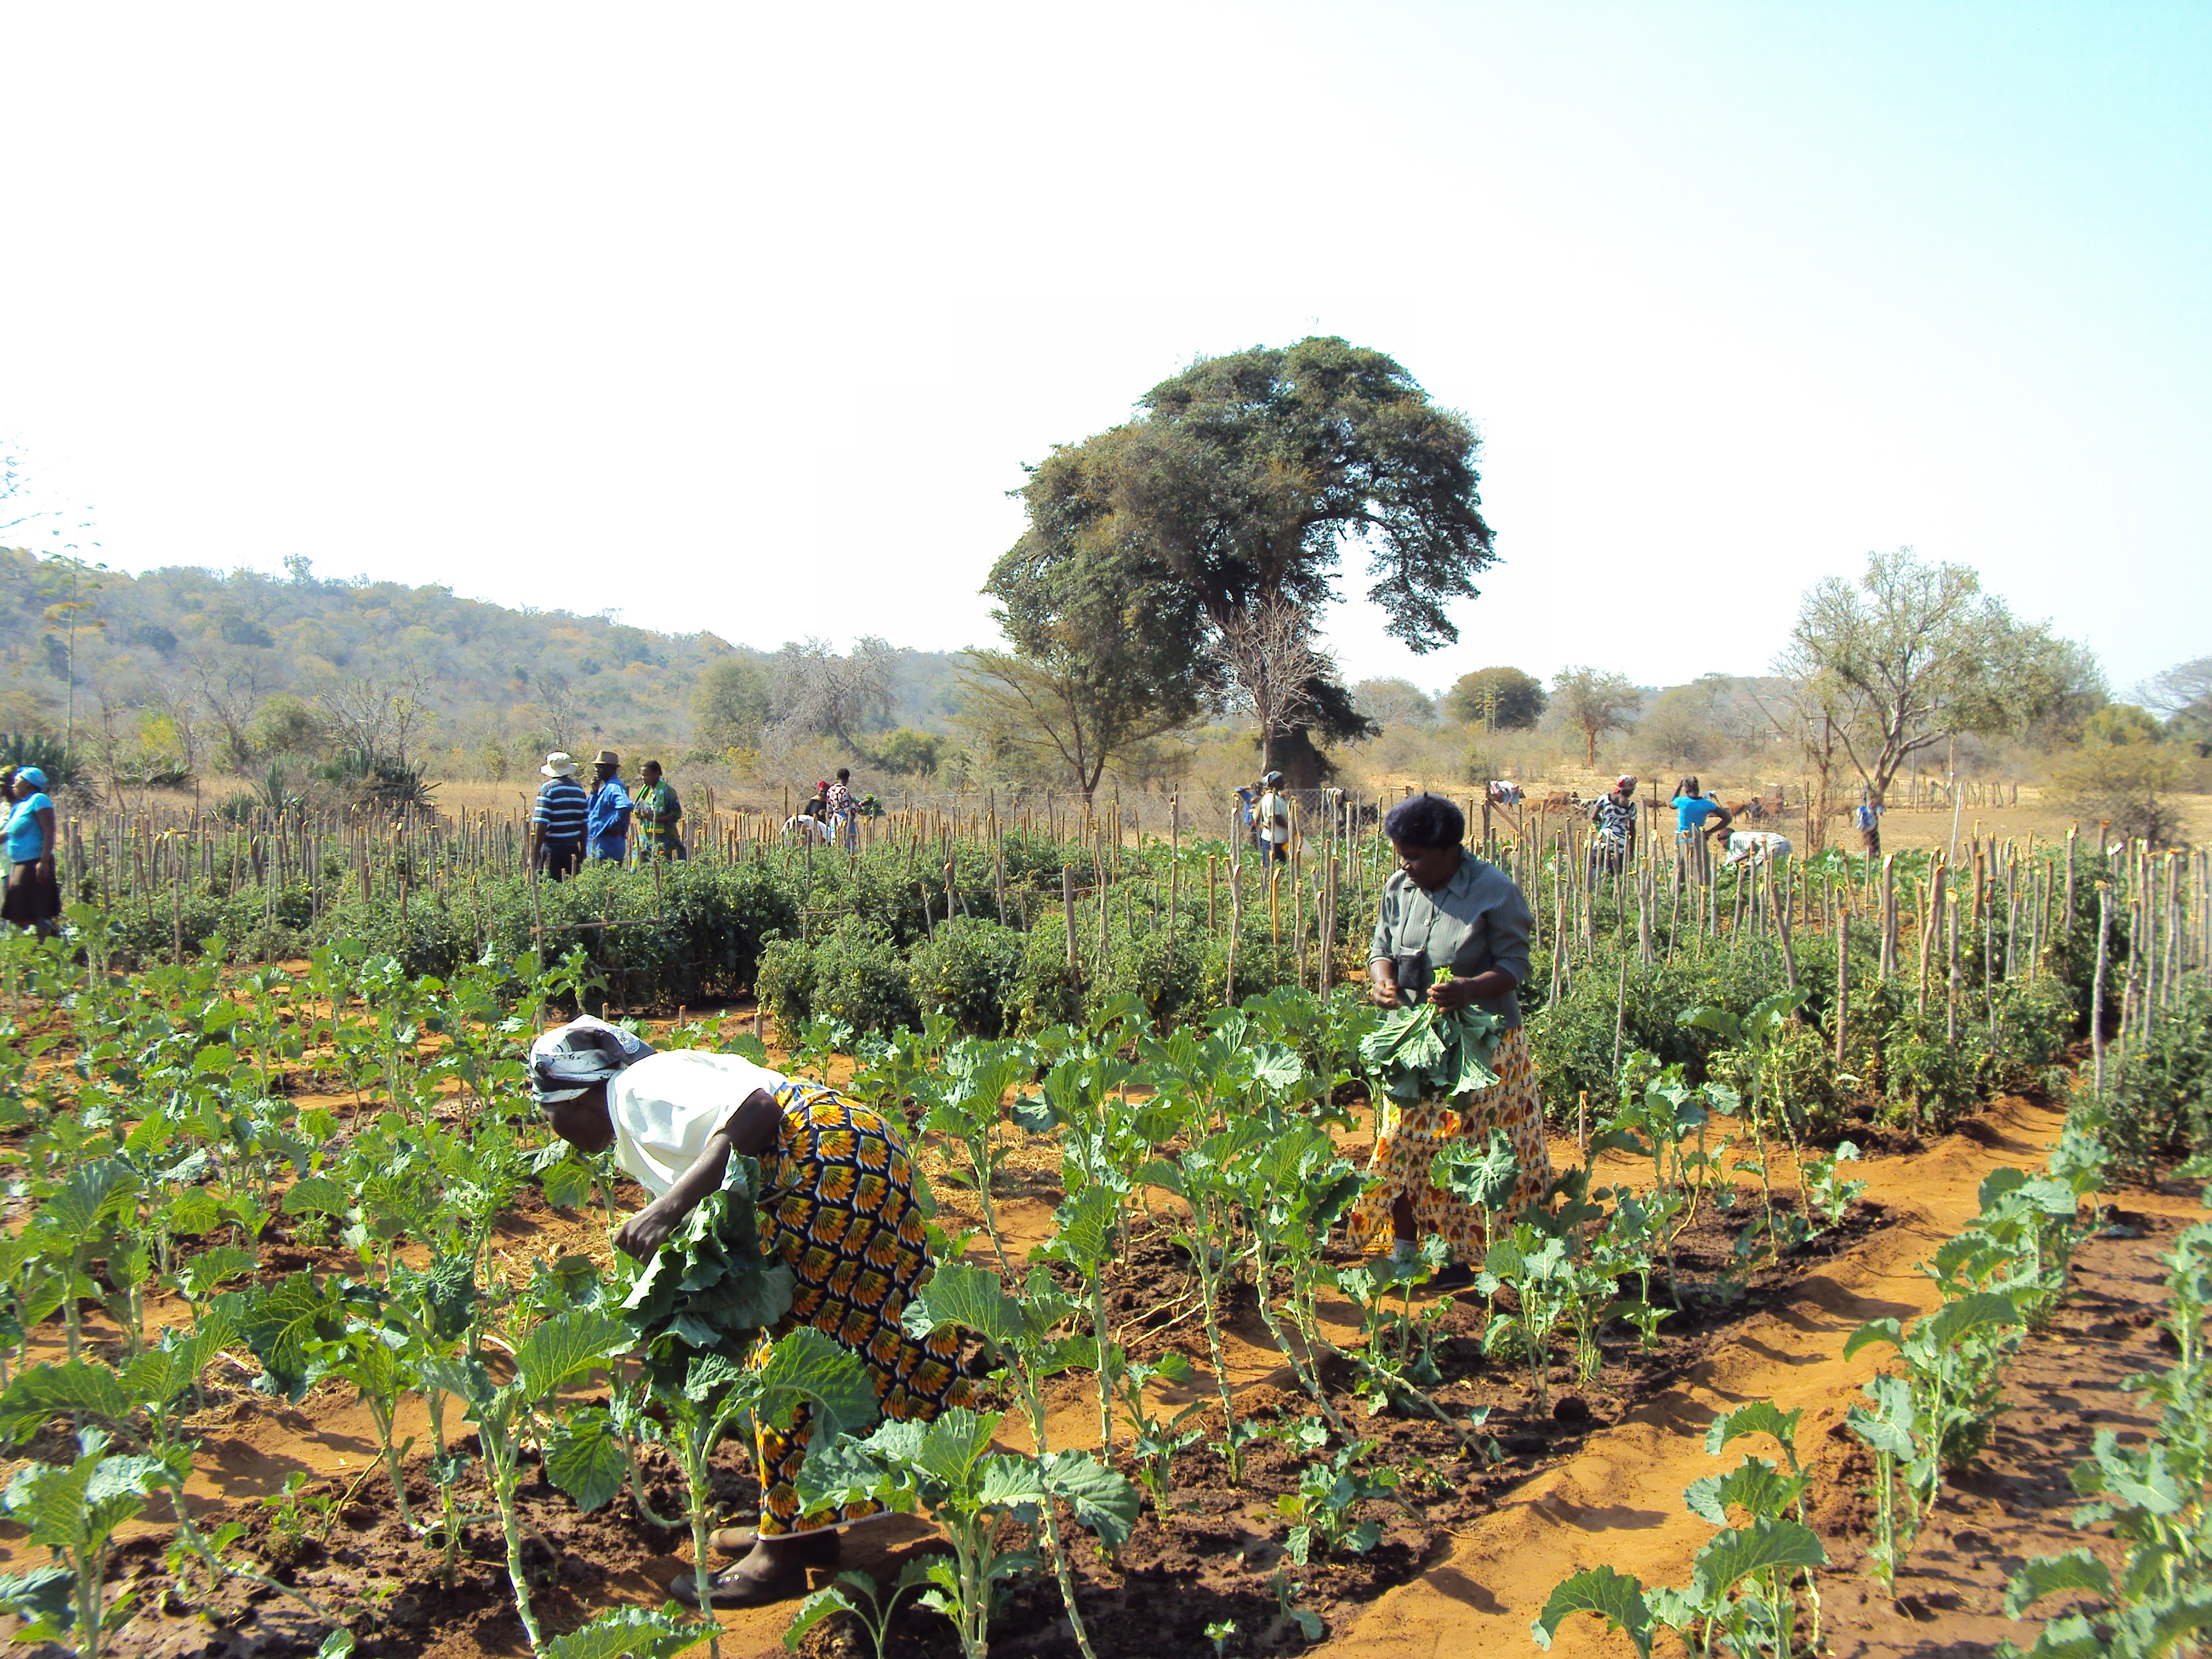 Women grow vegetables for their families in a communal garden in Zimbabwe. Image by Siobhan Jordan, Caritas Australia